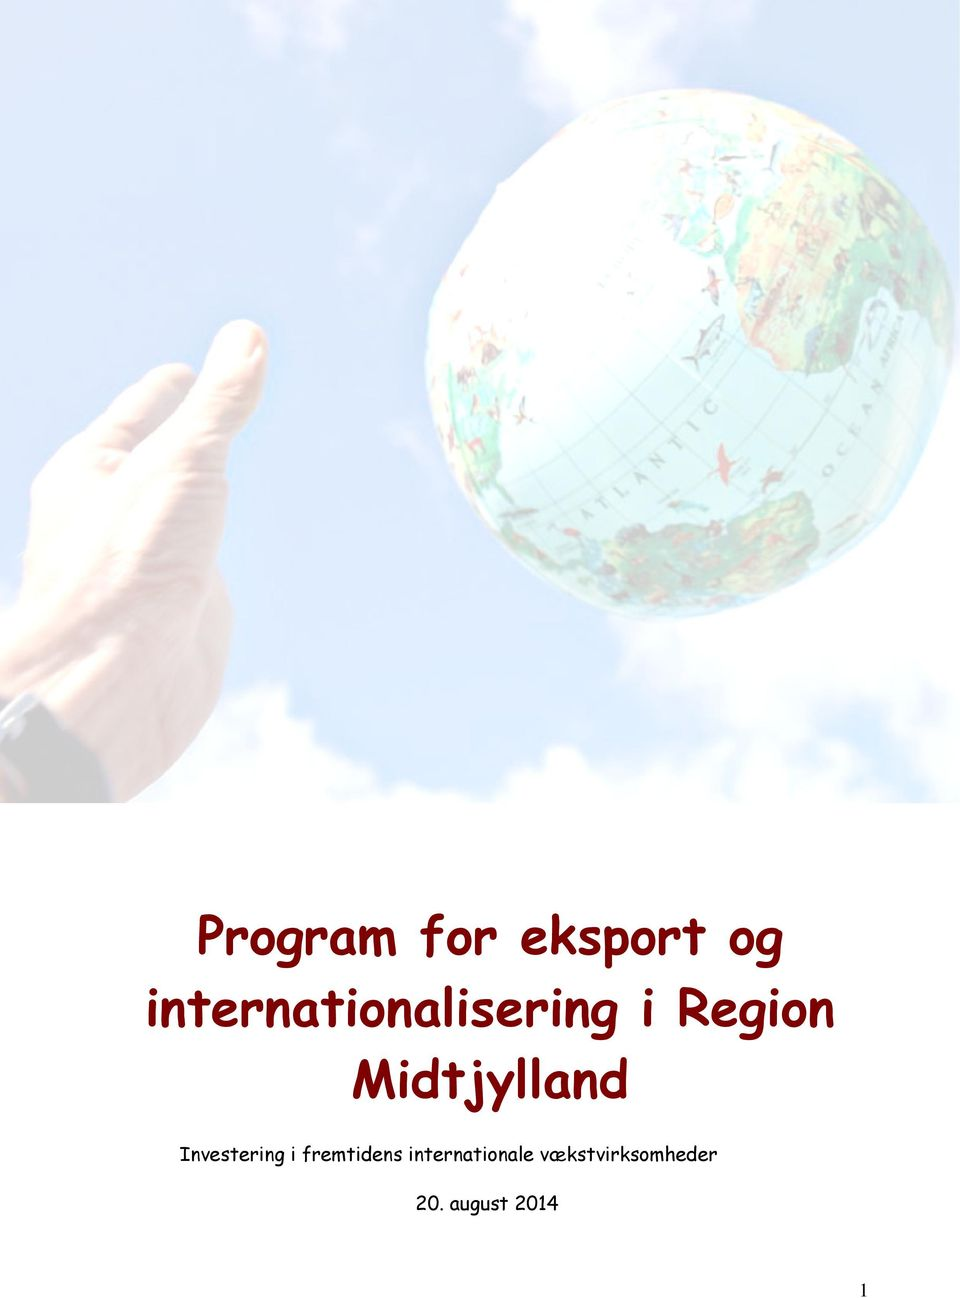 Midtjylland Investering i